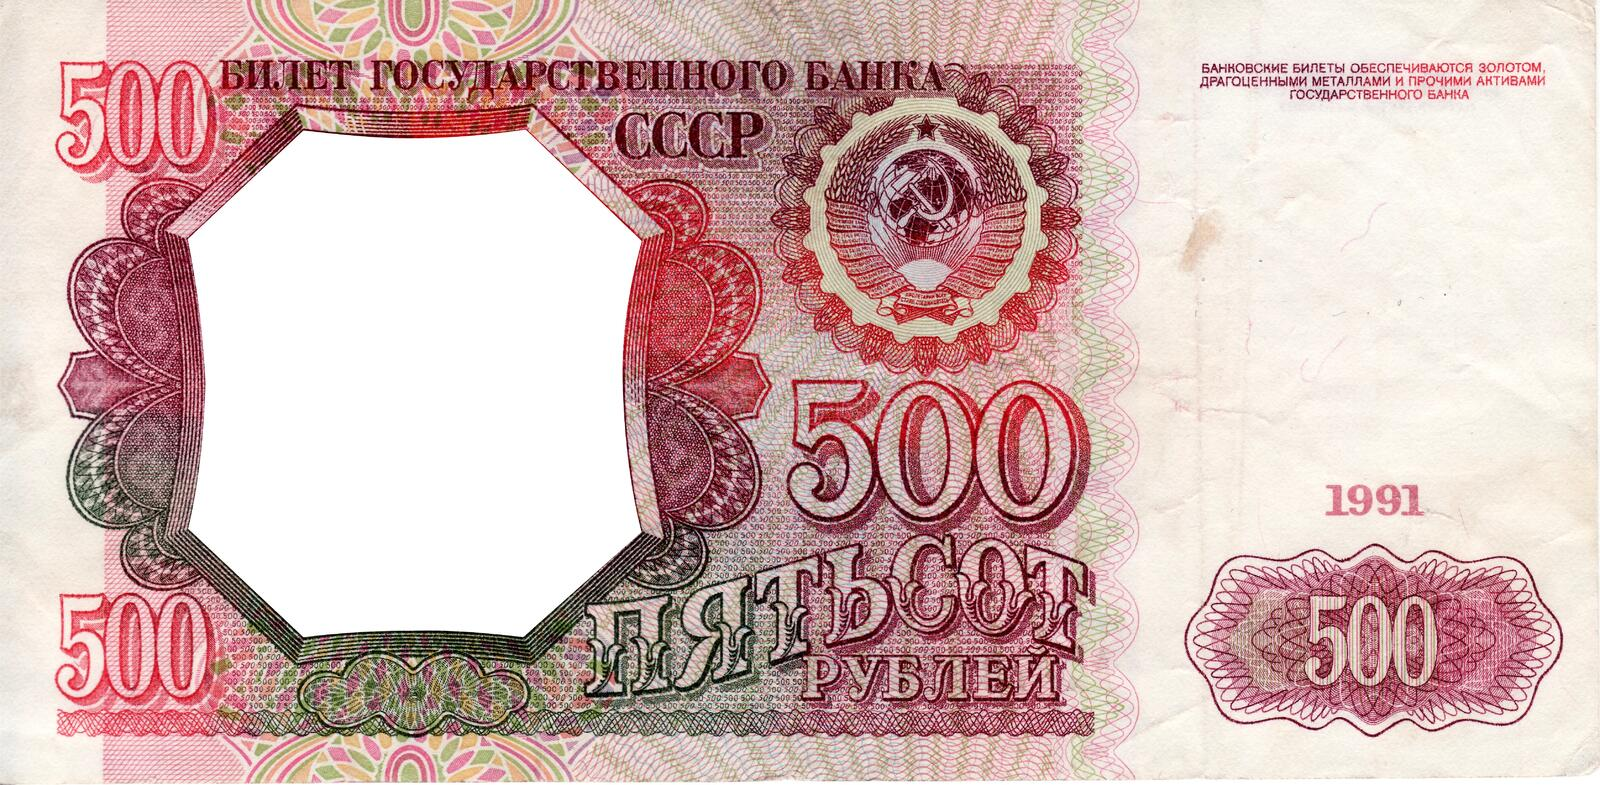 Template frame design banknote 500 rubles stock image image download template frame design banknote 500 rubles stock image image 85244913 pronofoot35fo Choice Image